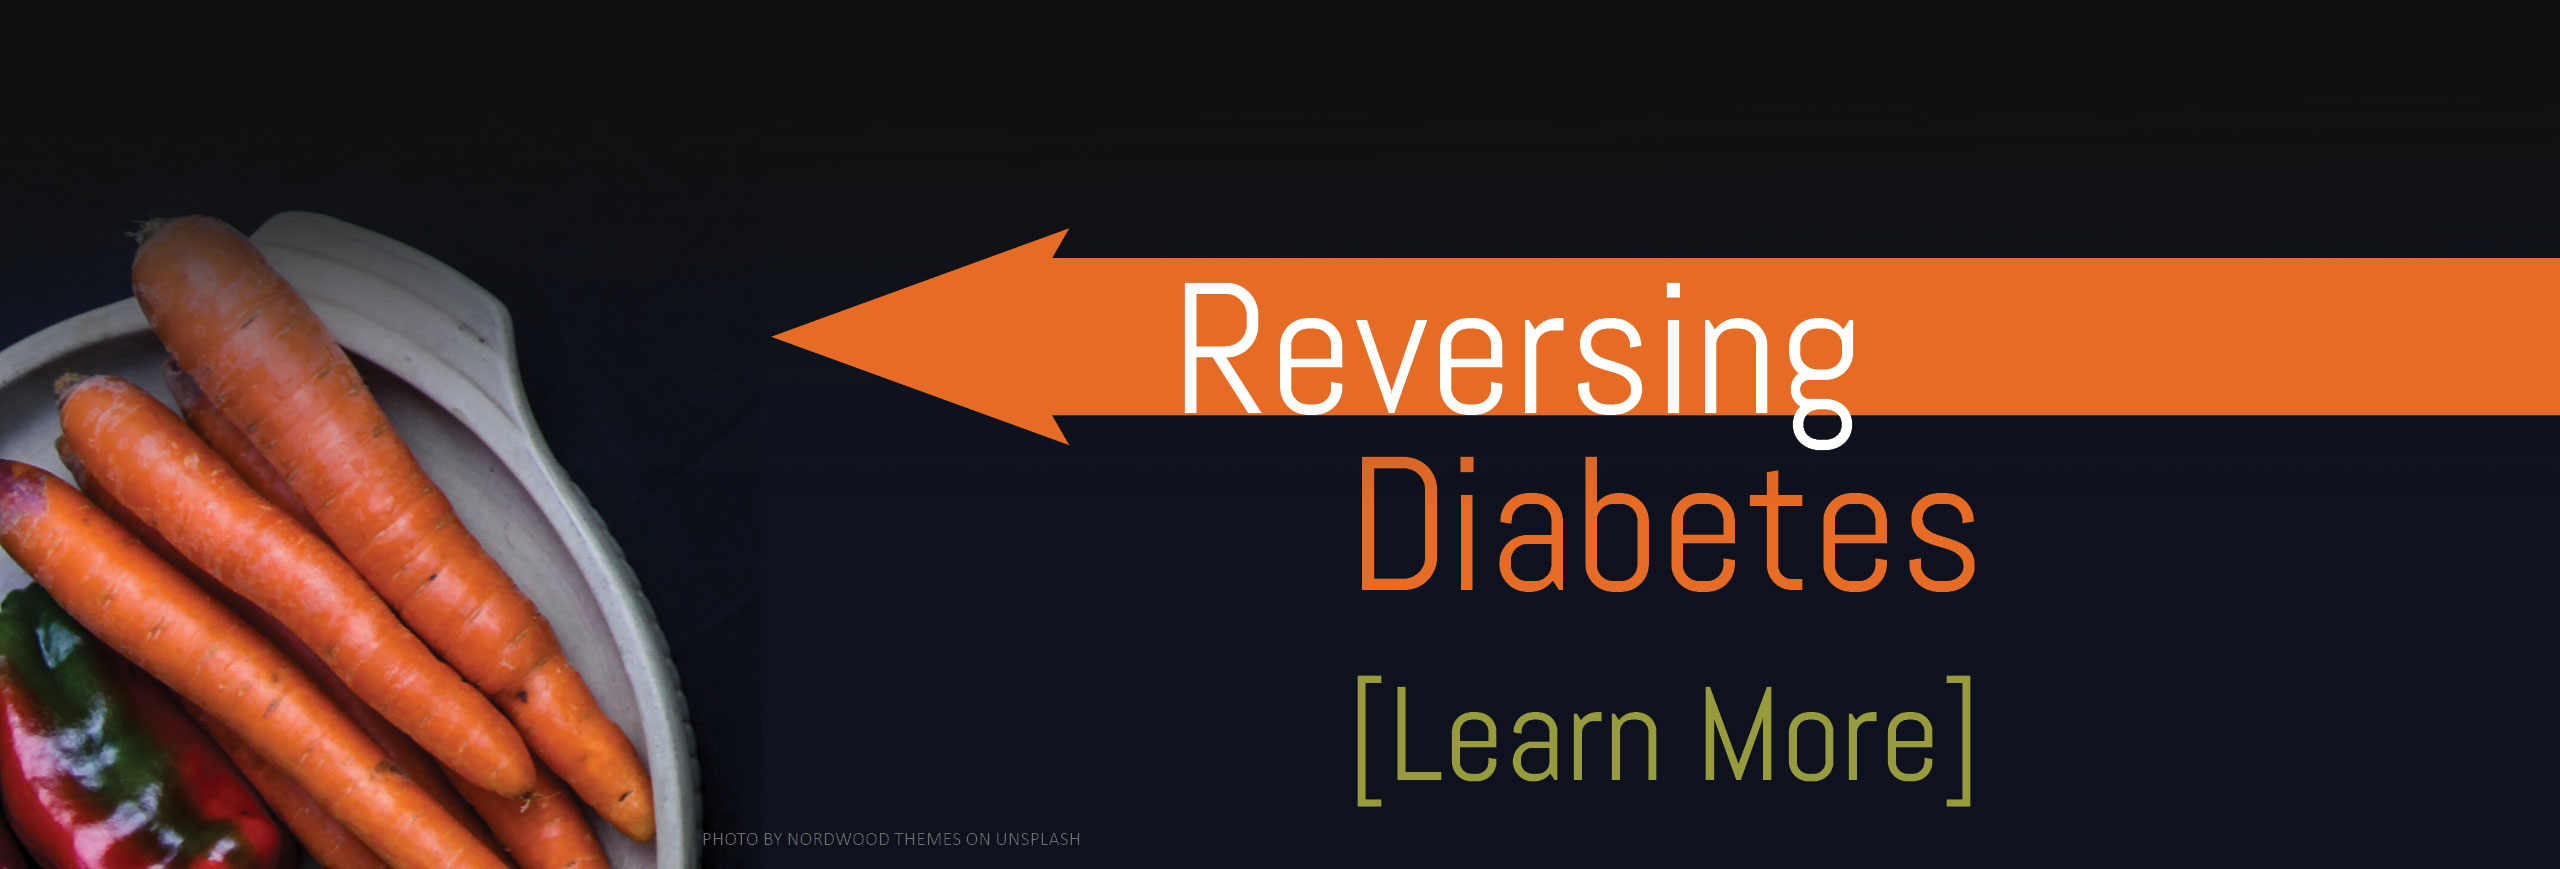 Reversing Diabetes - Begins Oct 17 at 6:30 - Every Thursday for 6 sessions